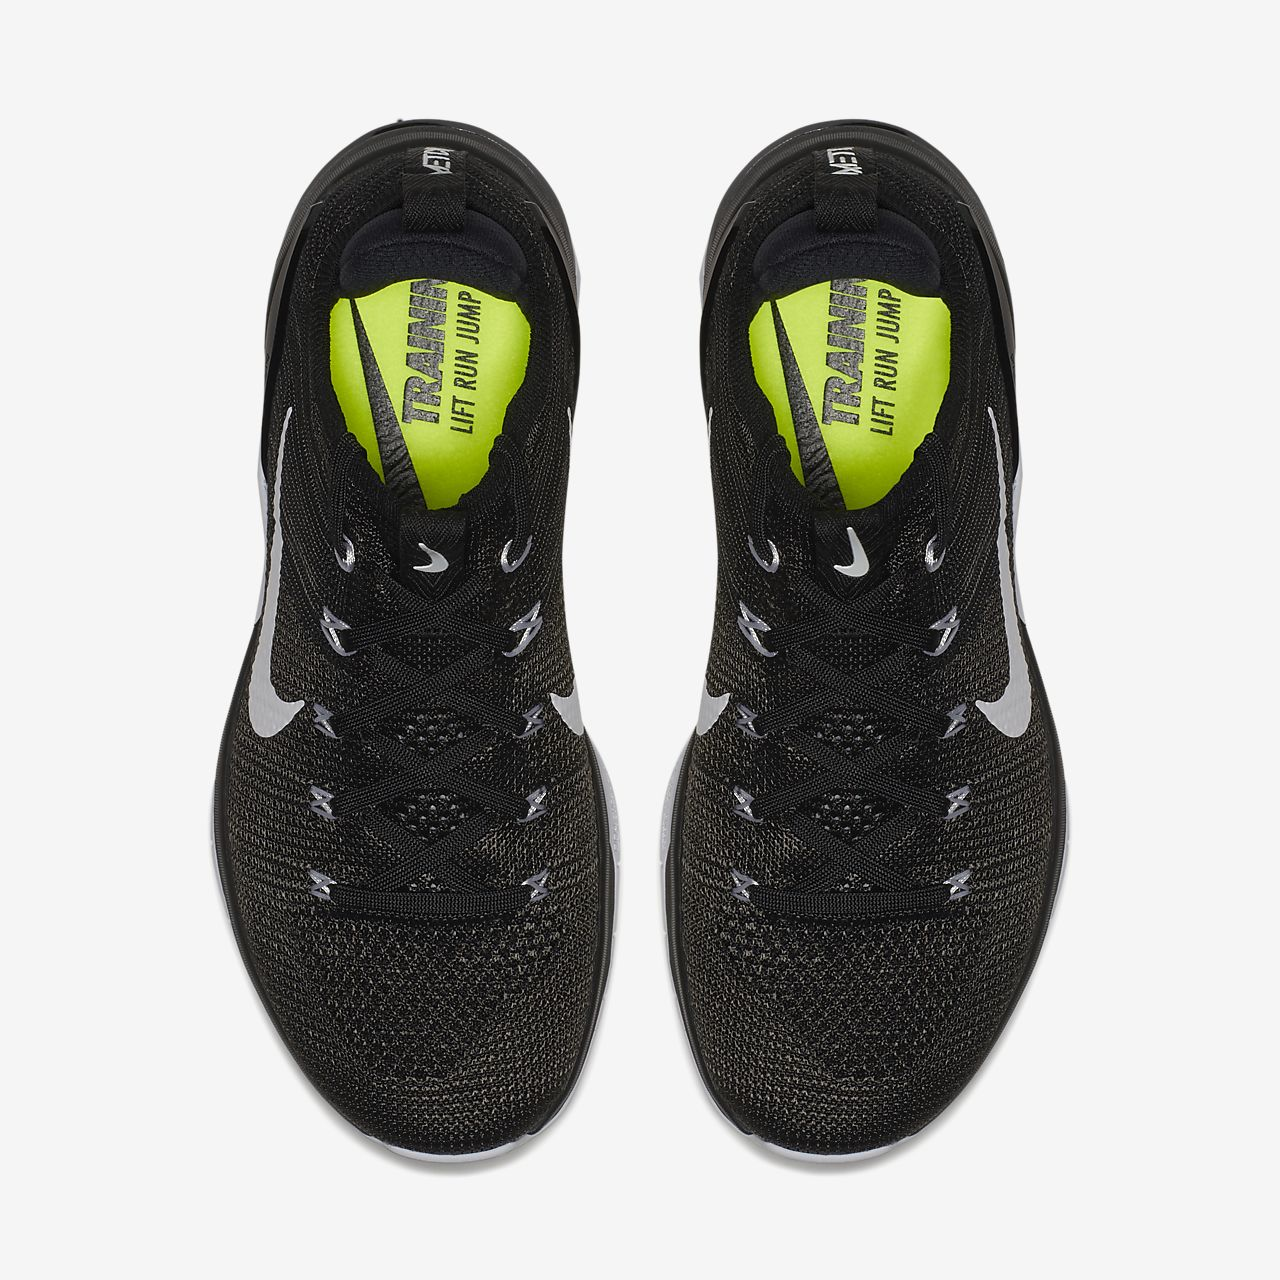 finest selection 4328a af661 ... Nike Metcon DSX Flyknit 2 Women s Cross Training Weightlifting Shoe